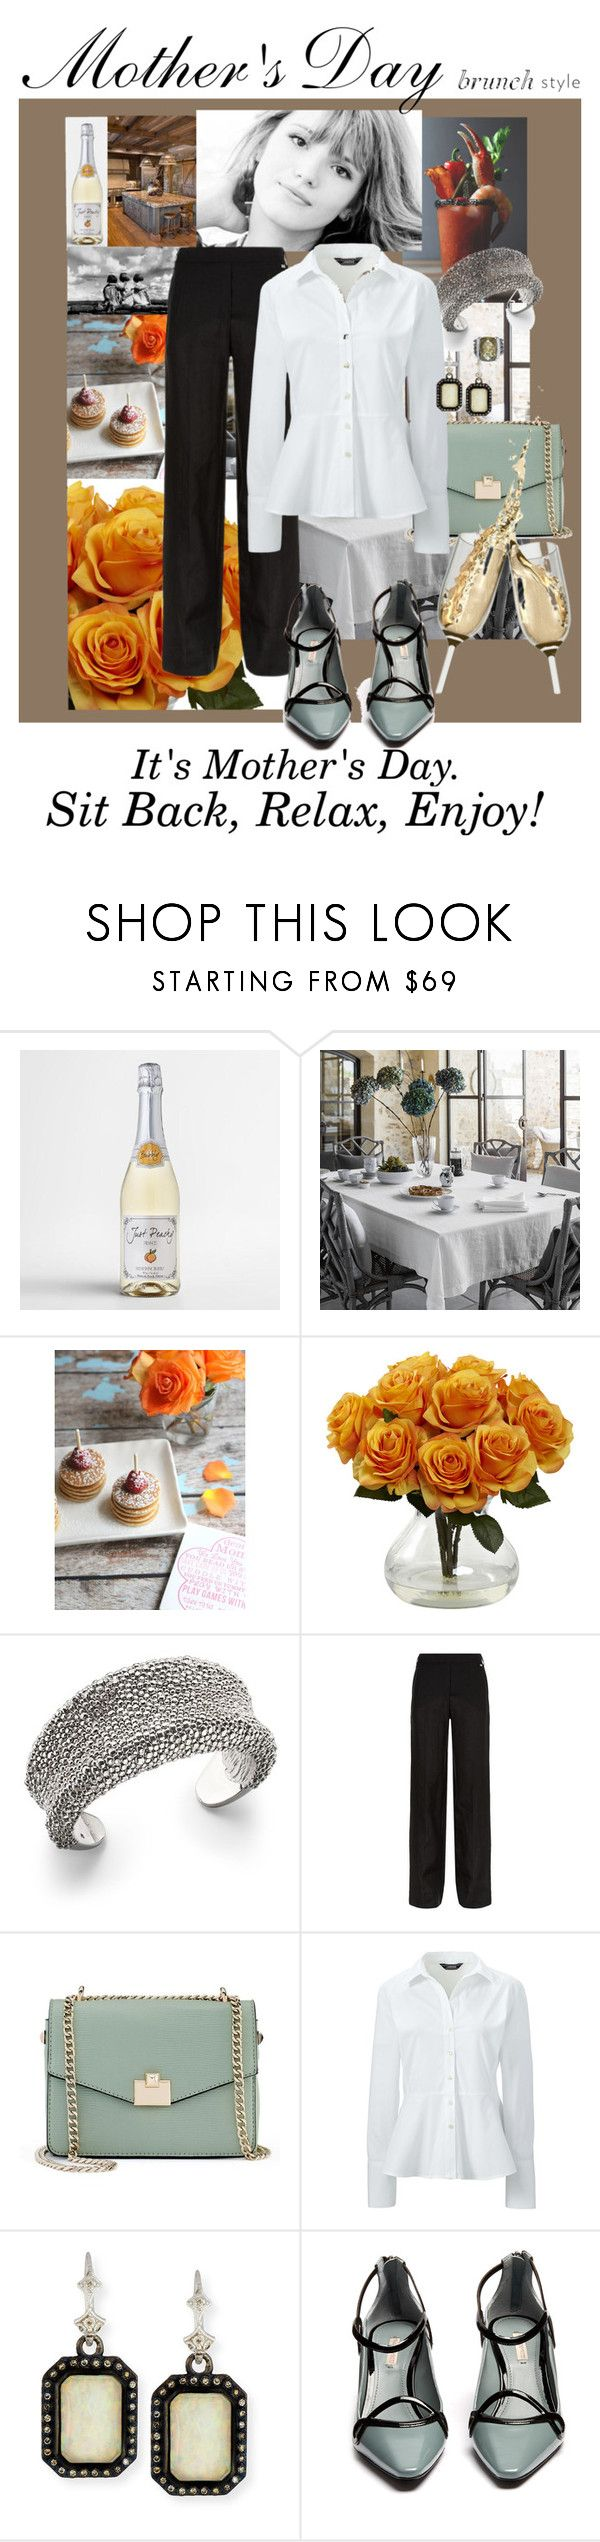 """""""Mother's Day Brunch Goals"""" by queenbeezzer ❤ liked on Polyvore featuring Just Peachy, The Linen Works, Mead, Roberto Coin, Escada Sport, Jennifer Lopez, Lands' End, Armenta, Fabrizio Viti and David Yurman"""